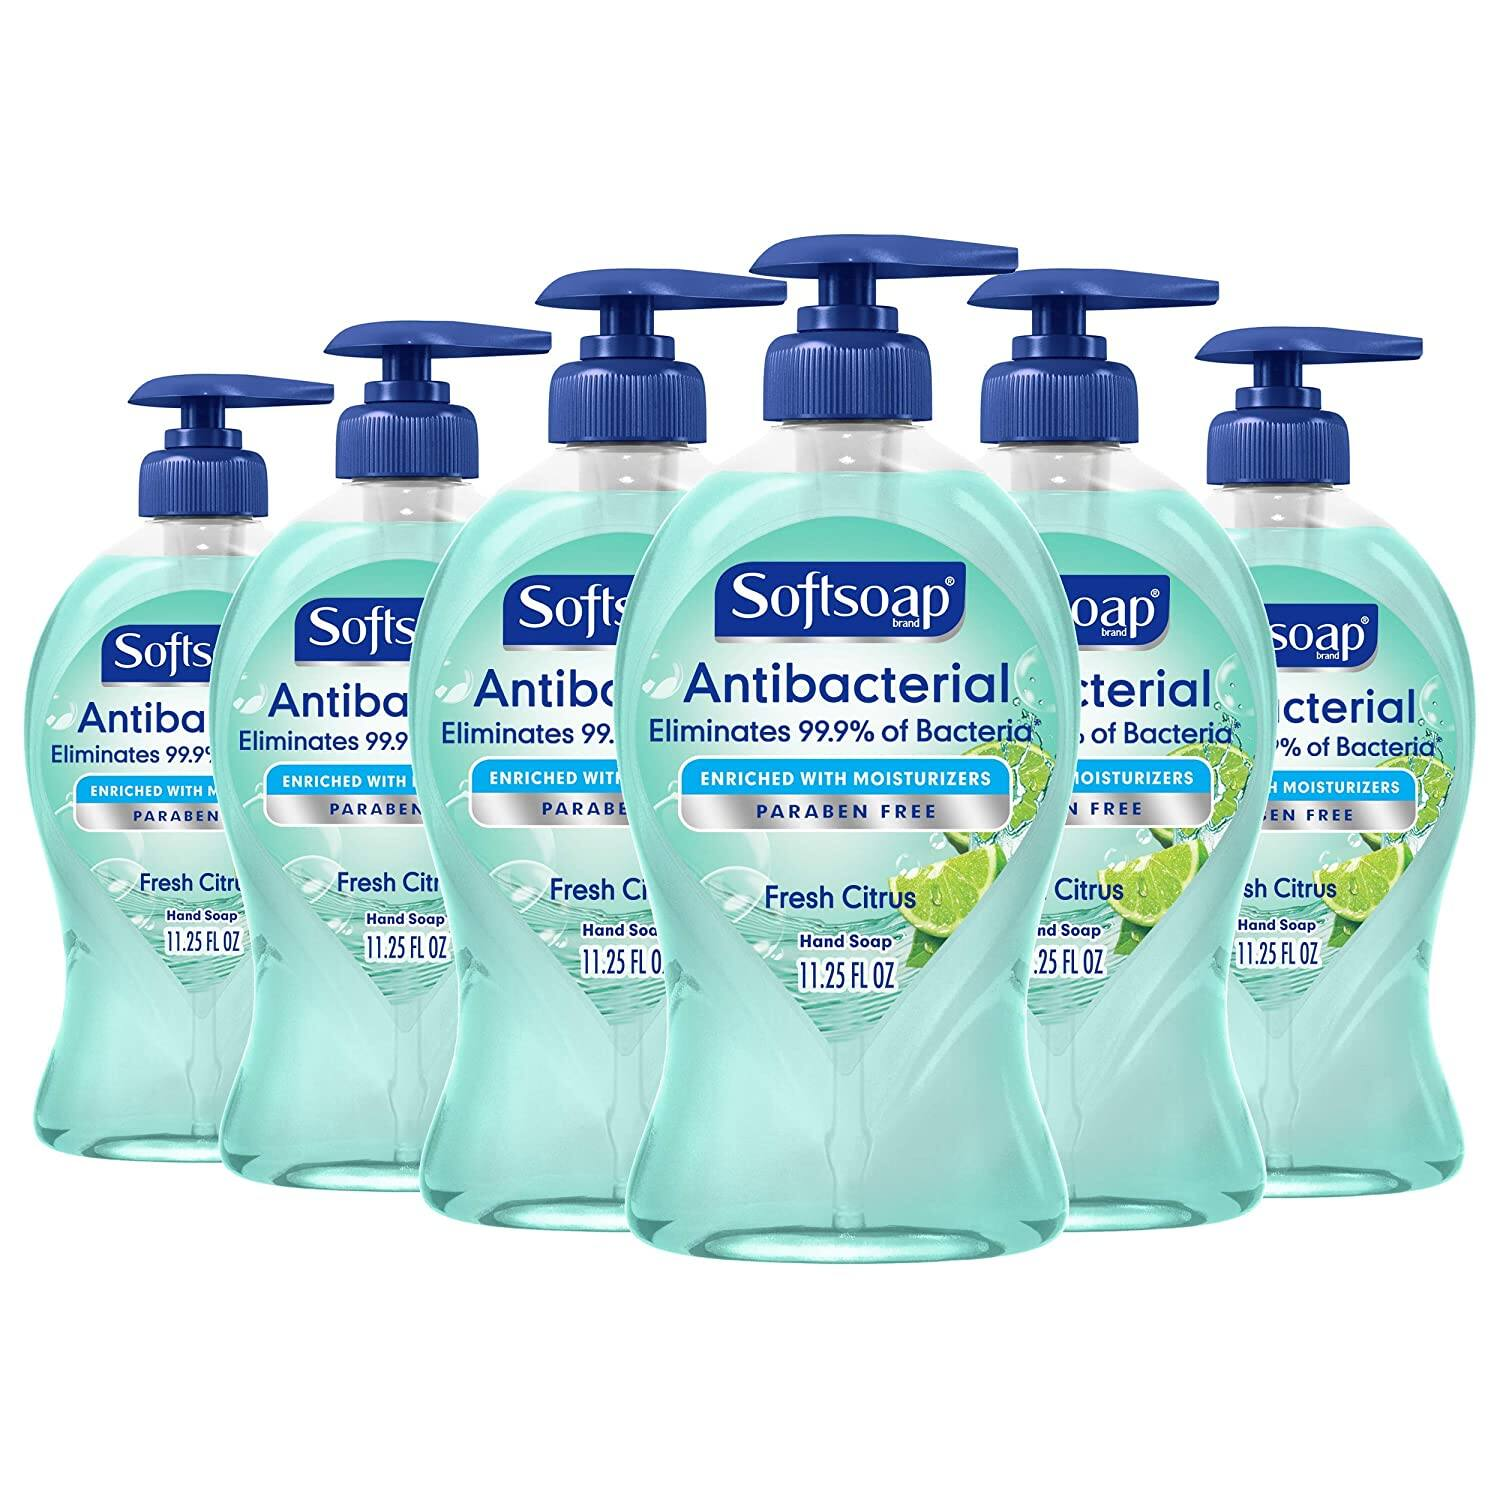 6 pack, 11.25 oz, Softsoap Antibacterial Liquid Hand Soap, (Fresh citrus, crisp clean, White tea & berry), $9.60 or lower with Subscribe and Save, Amazon